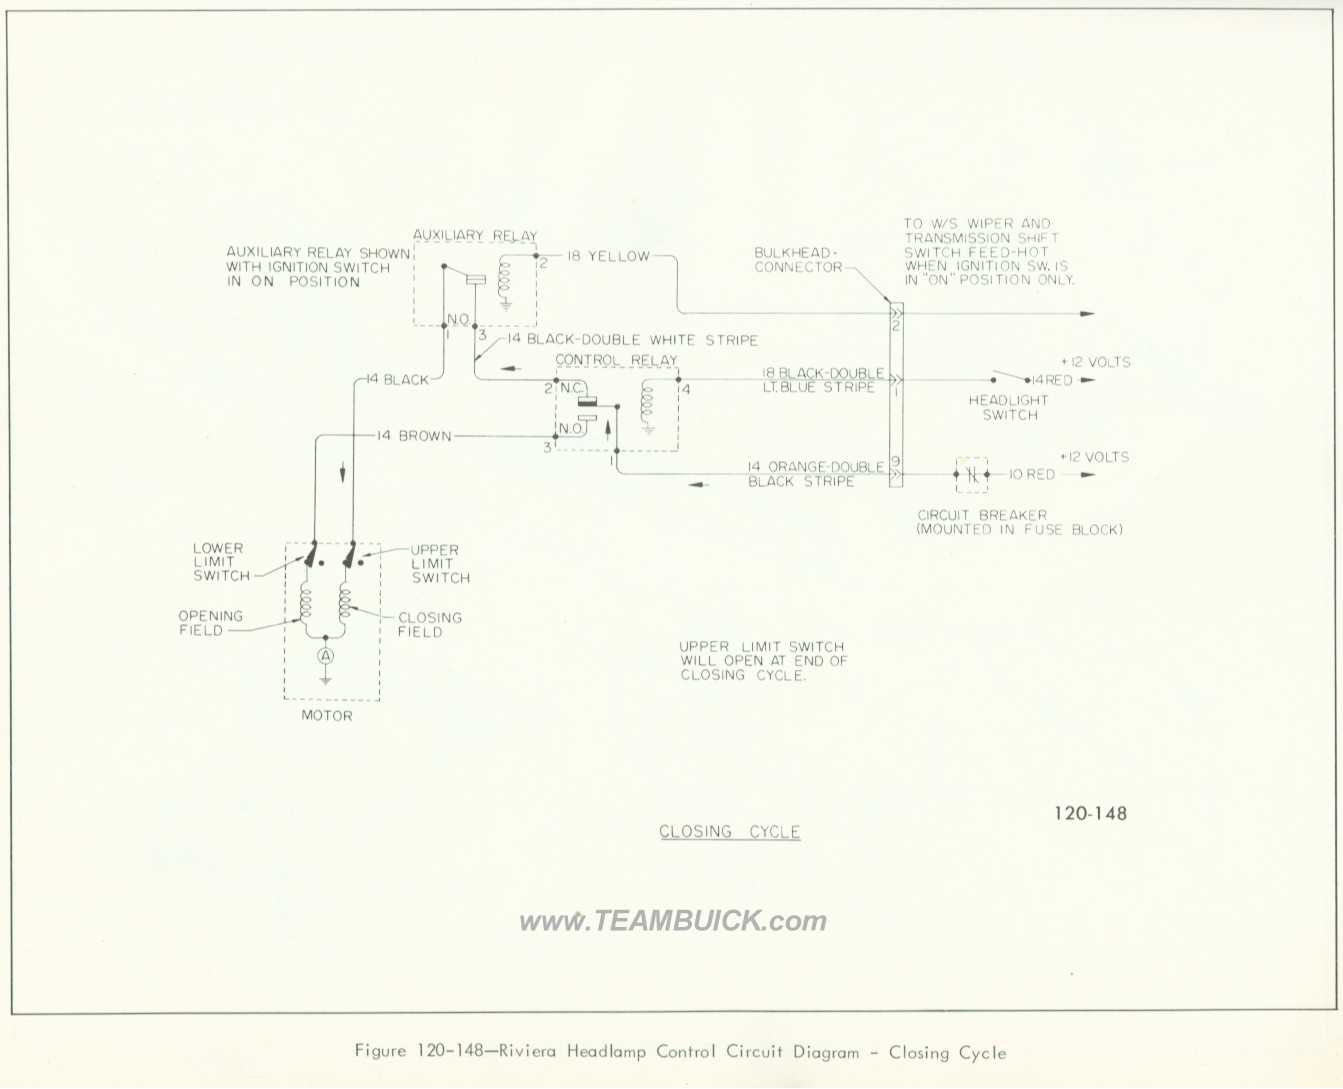 1966 Buick Riviera Headlamp Control Circuit Diagram Closing Cycle 120 Volt Relay Wiring